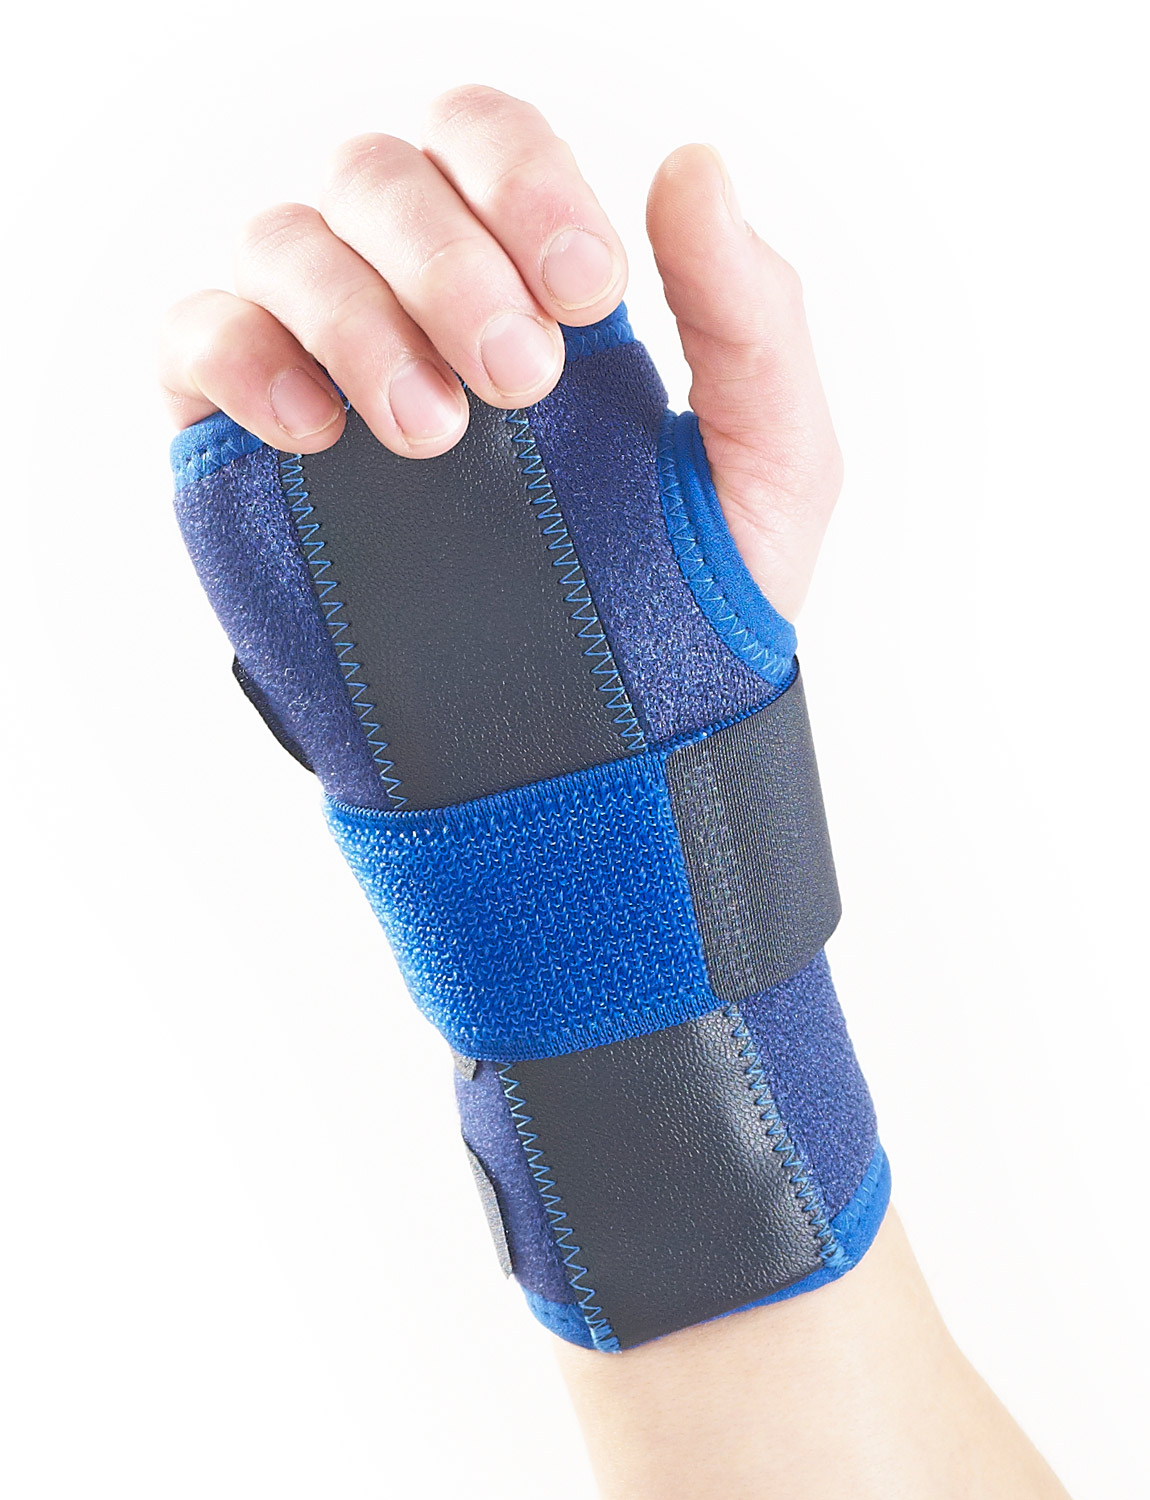 895 - STABILIZED WRIST BRACE  The durable, heat therapeutic neoprene helps with arthritic wrists, chronic aches and stiffness.